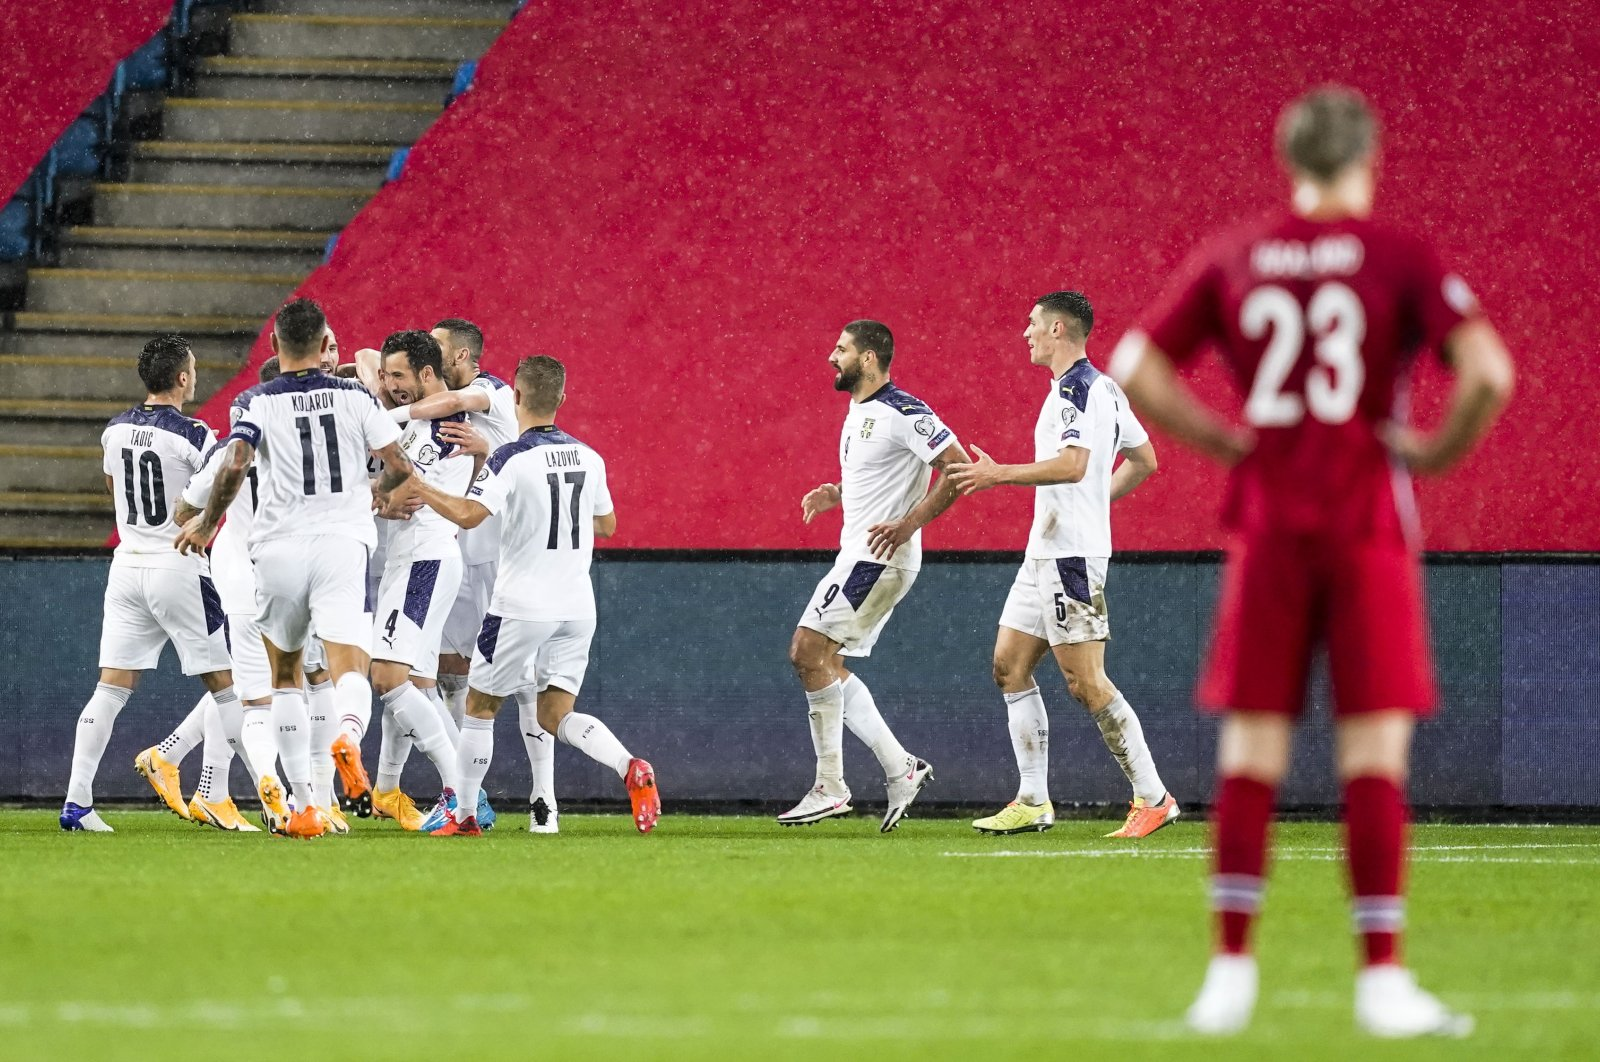 Norway's Erling Braut Haaland looks on as Serbia's players celebrate a goal during a Euro 2020 qualifying match, in Oslo, Norway, Oct. 8, 2020. (AFP Photo)